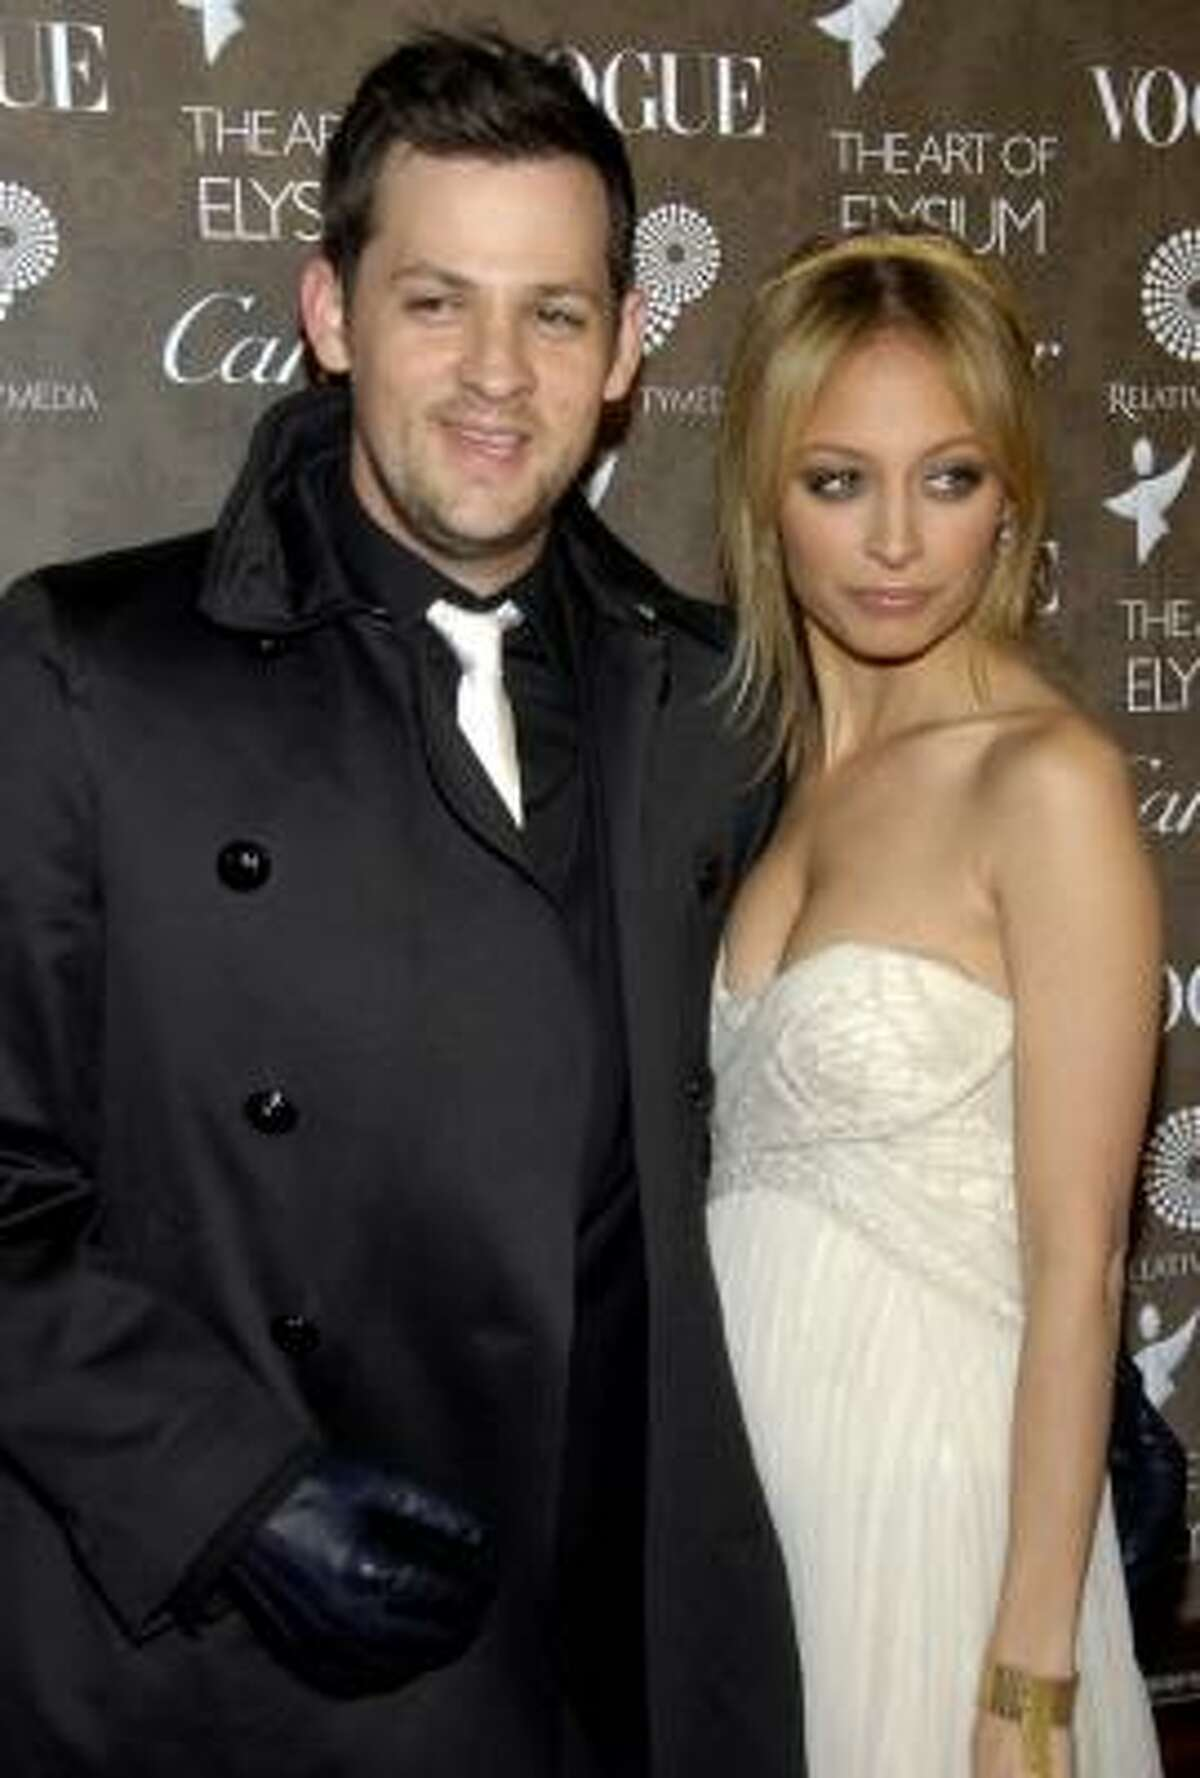 Nicole Richie and Joel Madden welcomed a little boy on 9-9-09. They have named the tyke Sparrow.